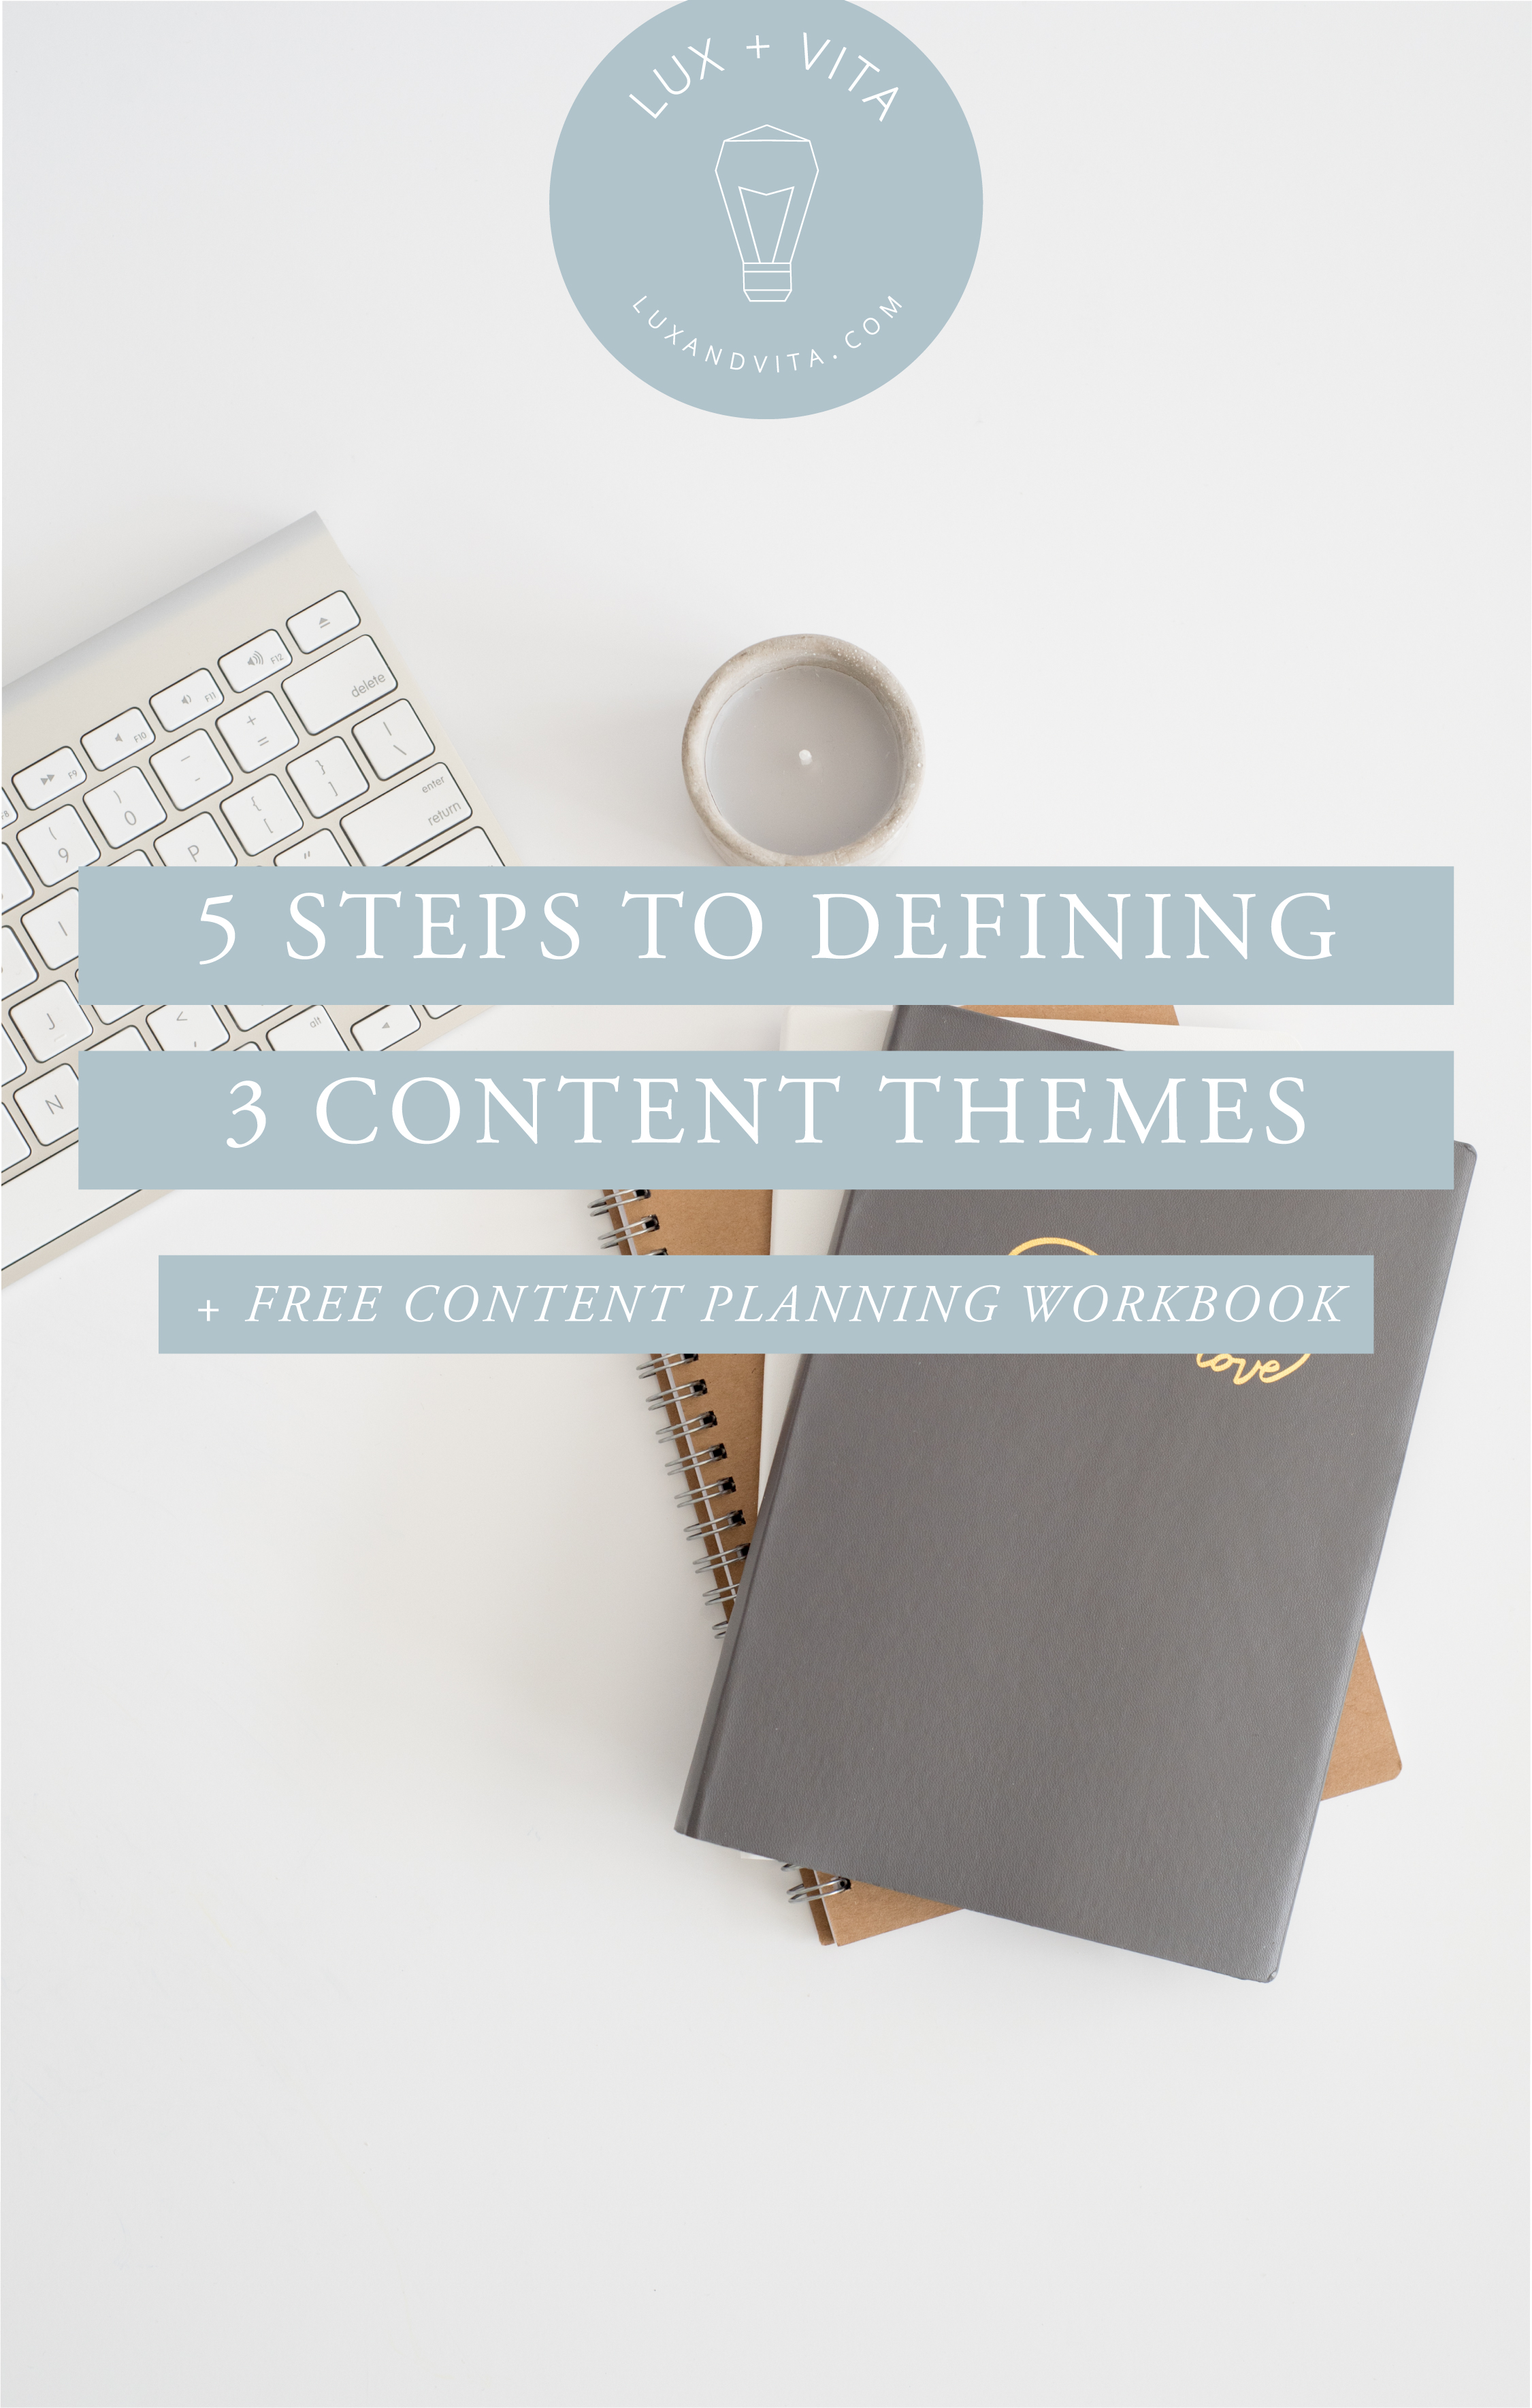 How to define your content themes